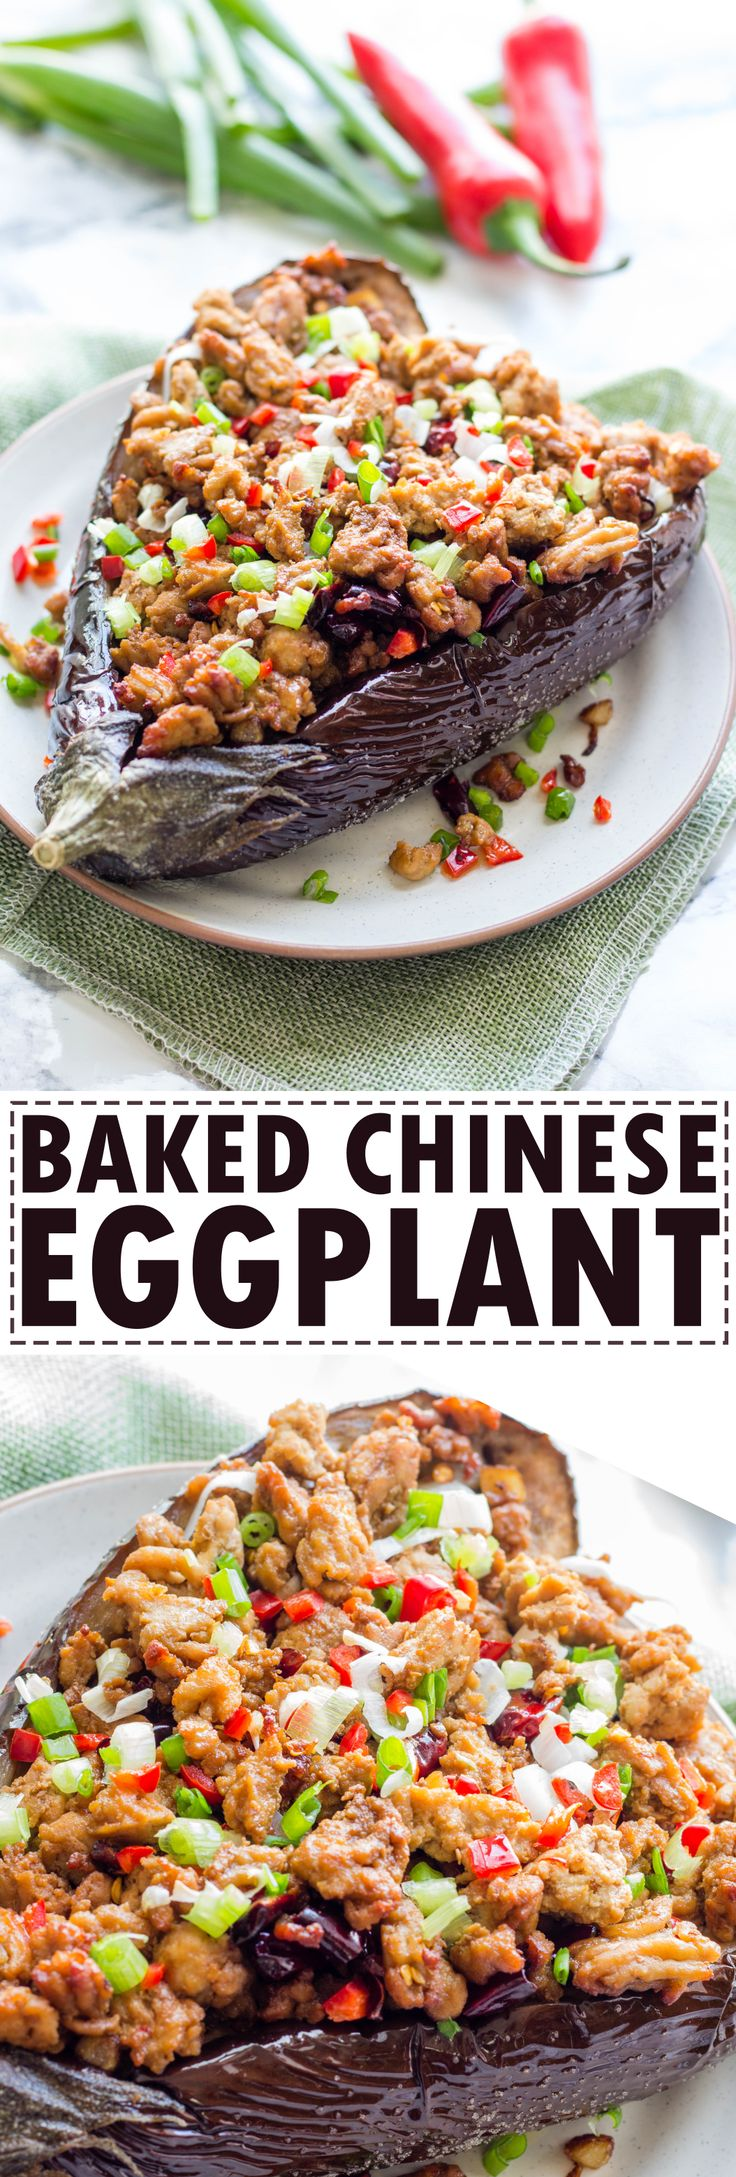 Super yummy baked Chinese eggplant recipe! This is a Szechuan eggplant recipe. A little bit spicy but you can swap the chilli with bell pepper. Very easy to do and super yummy to eat. If you like eggplant, you should definitely check out this recipe!